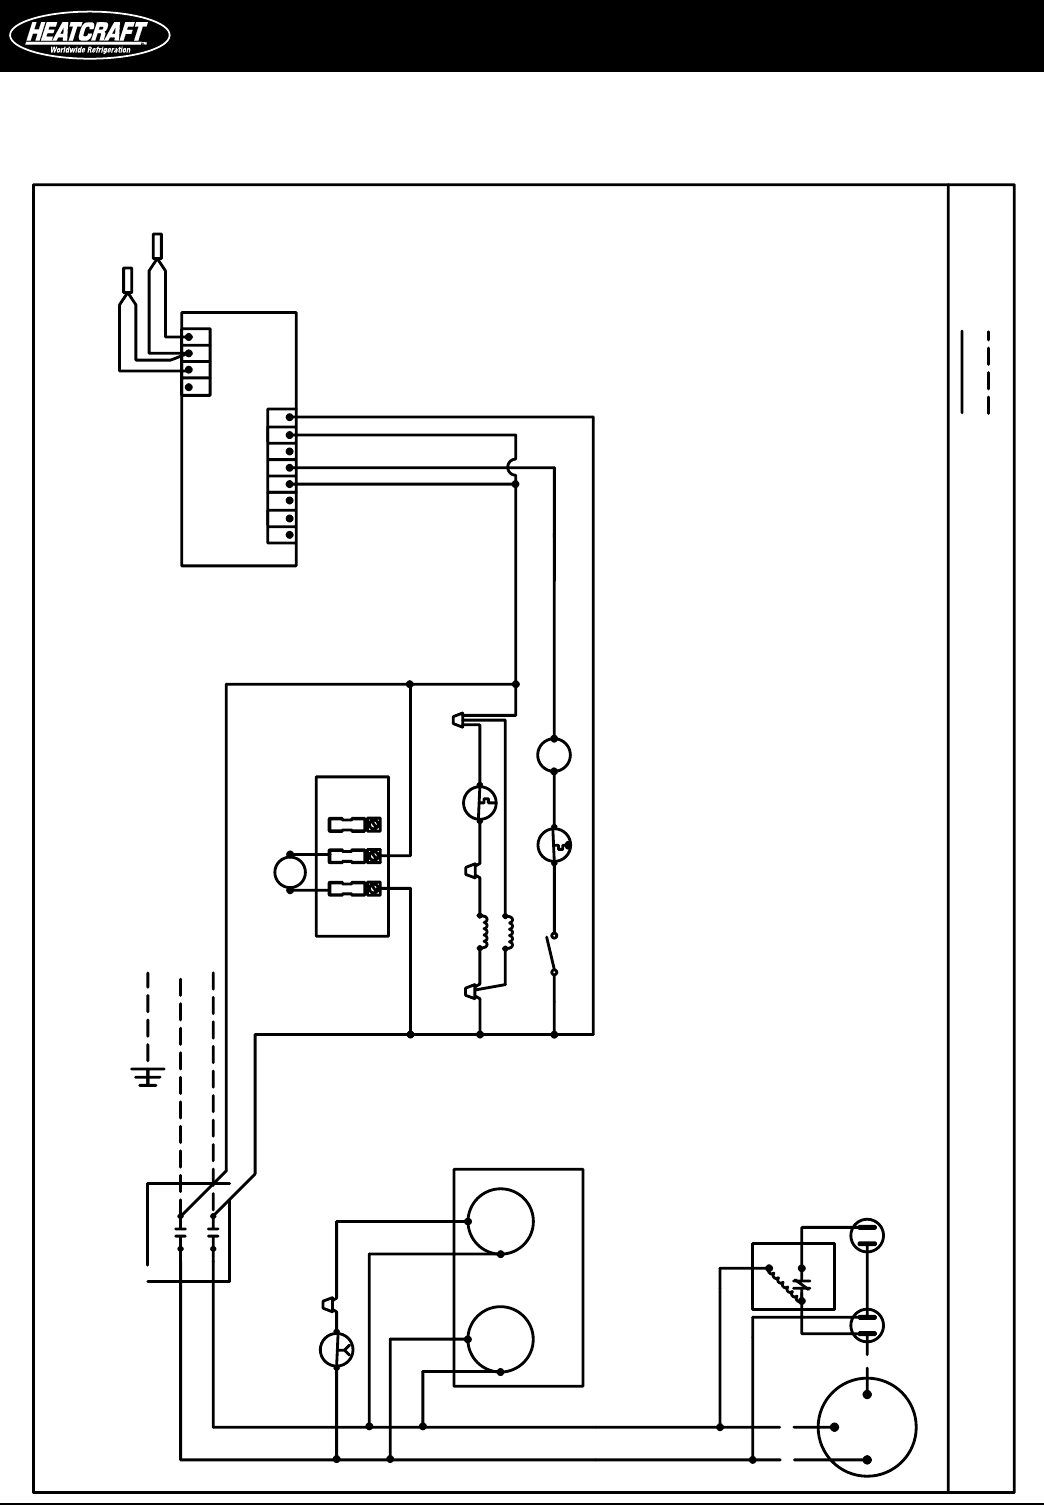 heatcraft wiring diagram heatcraft refrigeration wiring diagrams freezer defrost timer wiring diagram freezer evaporator coil wiring diagram